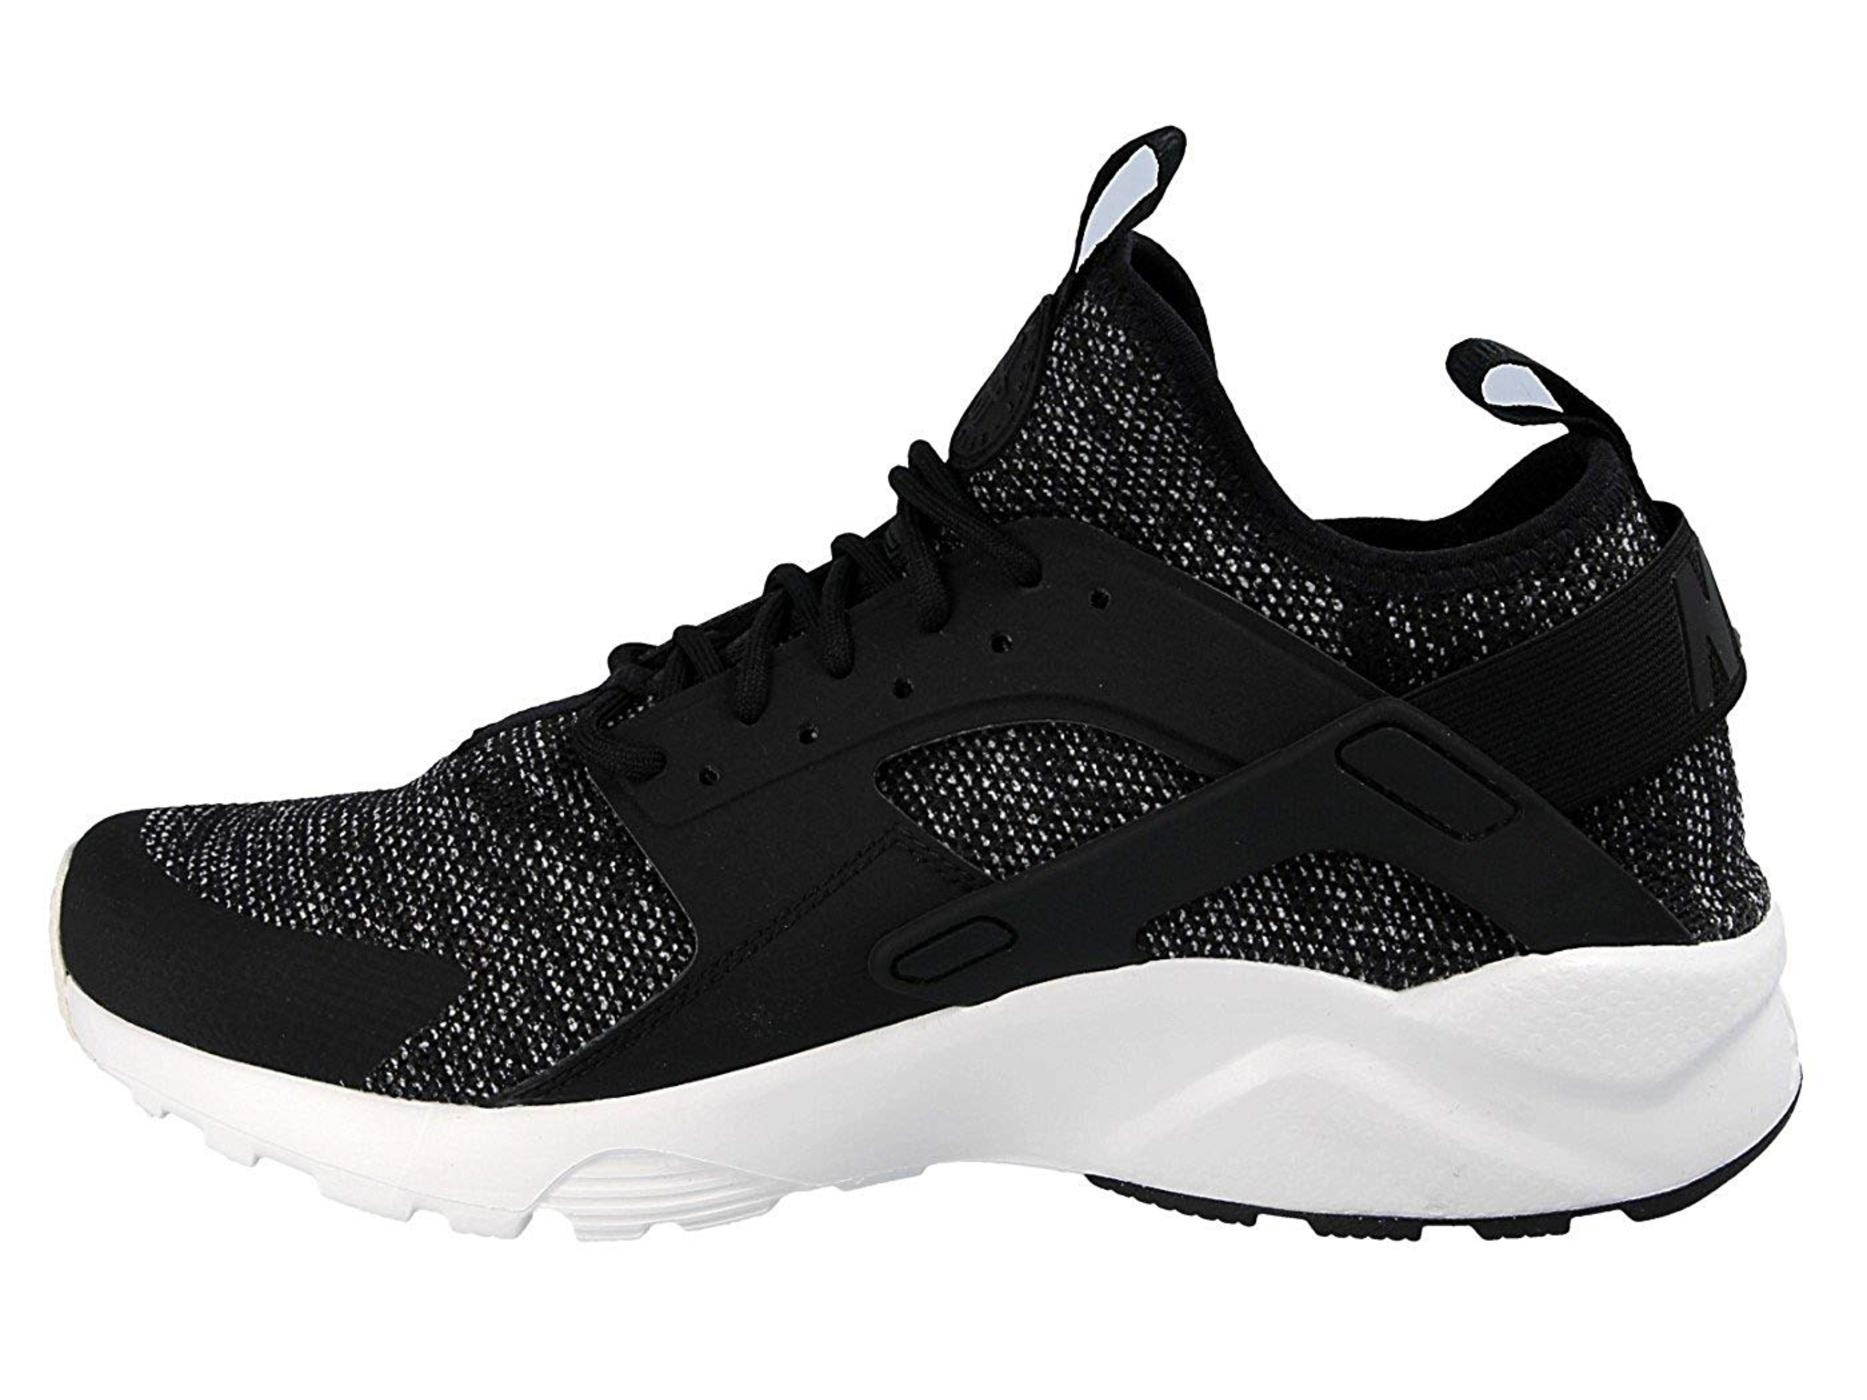 086165dc5628 Nike Mens Air Huarache Run Ultra BR Low Top Lace Up Running